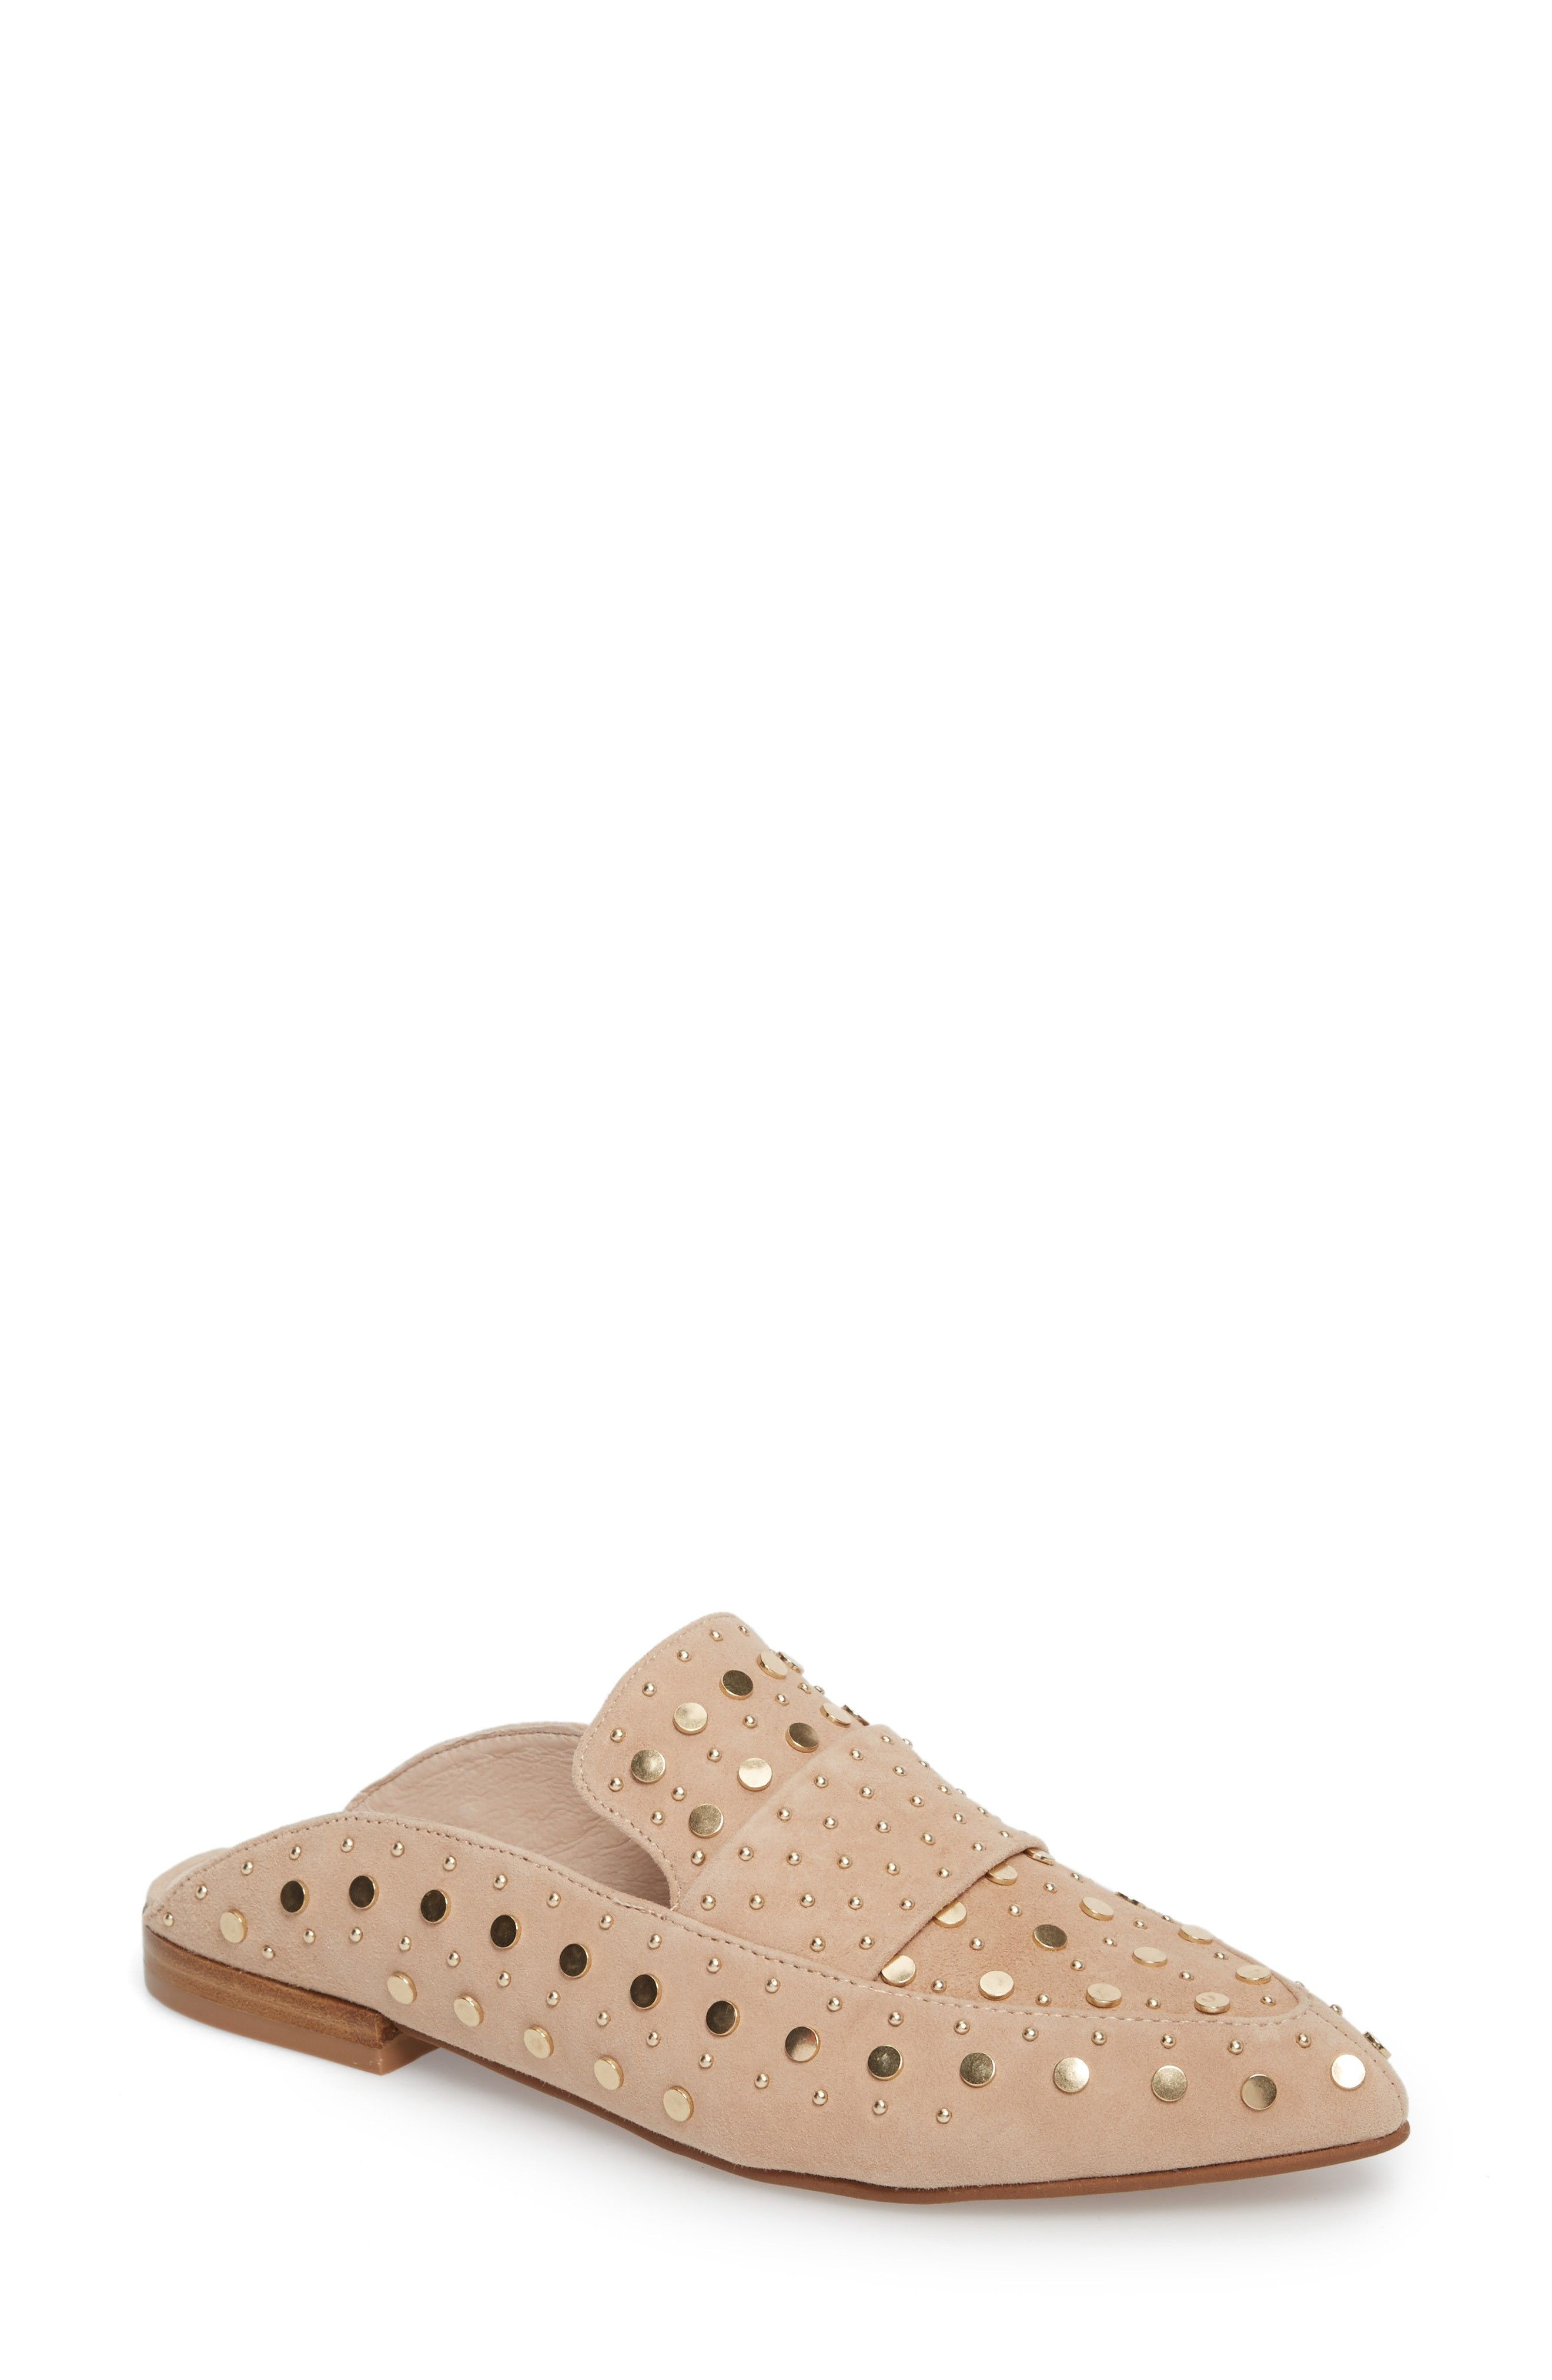 8230b8b38632 Charlie Studded Loafer Mule #mules #womensfashion #musthave #style  #nordstrom